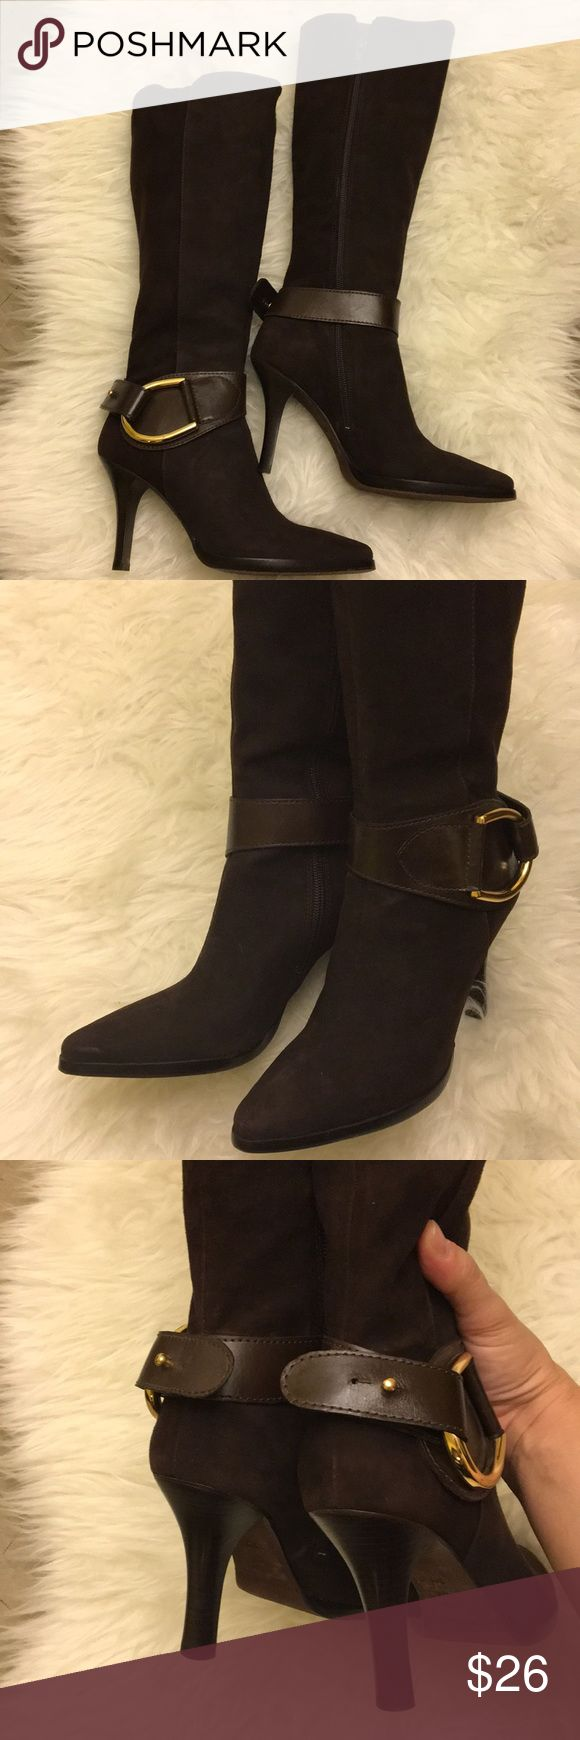 Antonio Melani Brown Boots. They still look brand new! Beautiful! Size 6 ANTONIO MELANI Shoes Heeled Boots